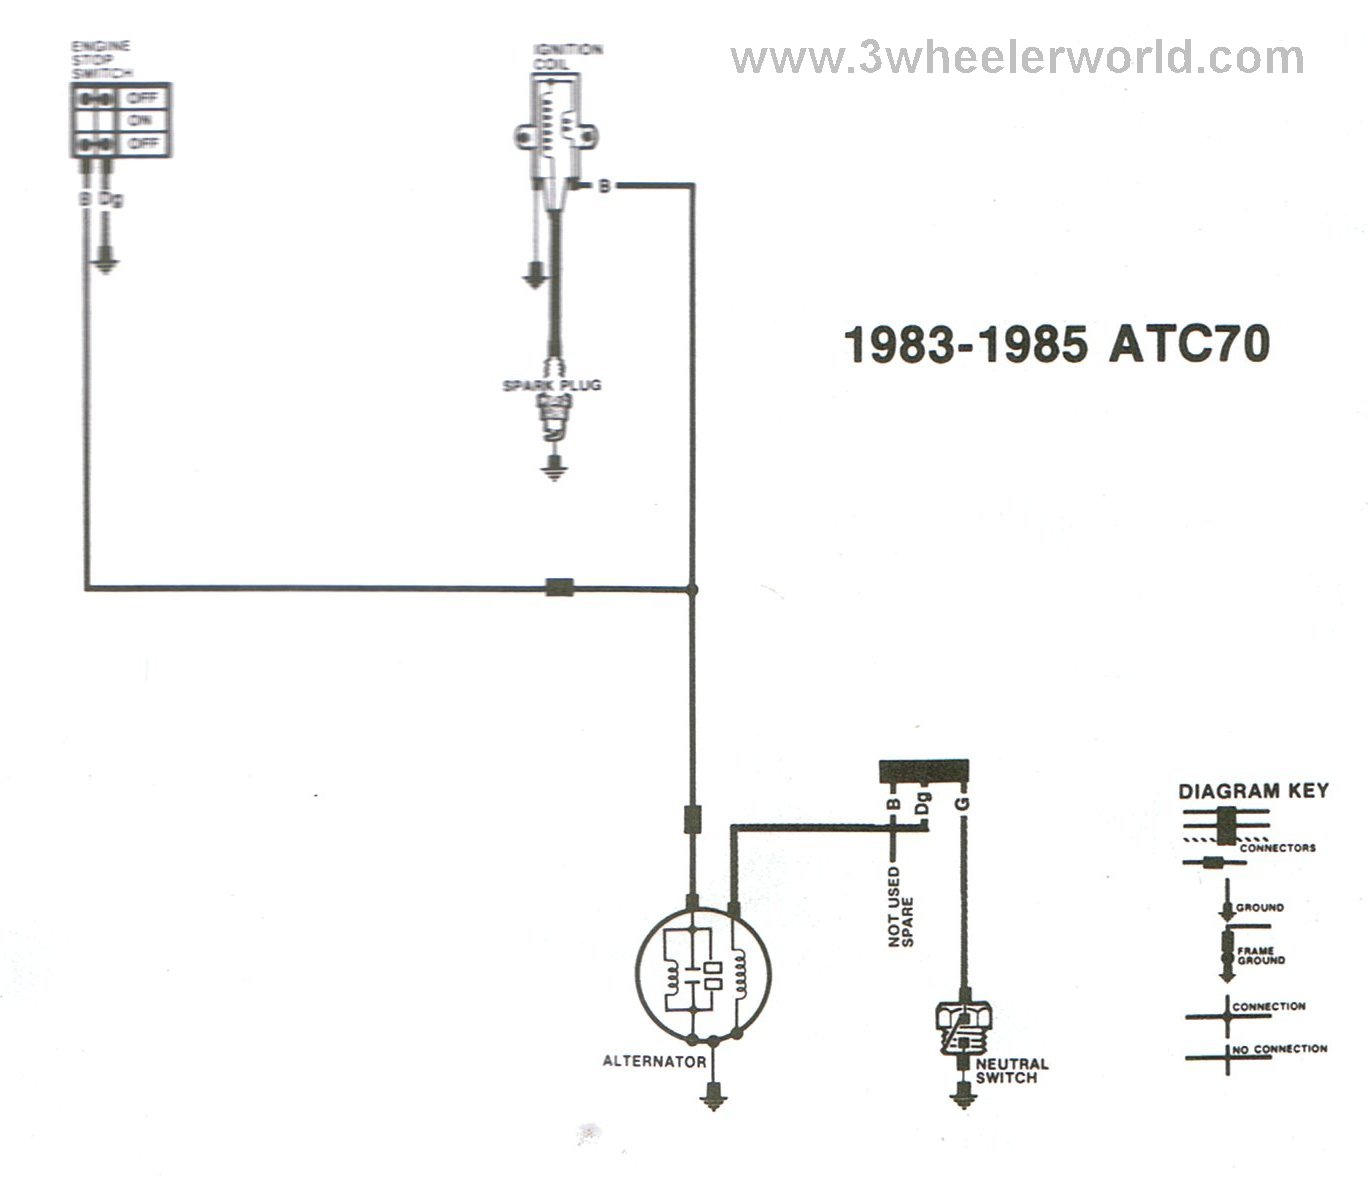 ATC70x83Thru85 3 wheeler world tech help honda wiring diagrams atc 70 wiring diagram at sewacar.co